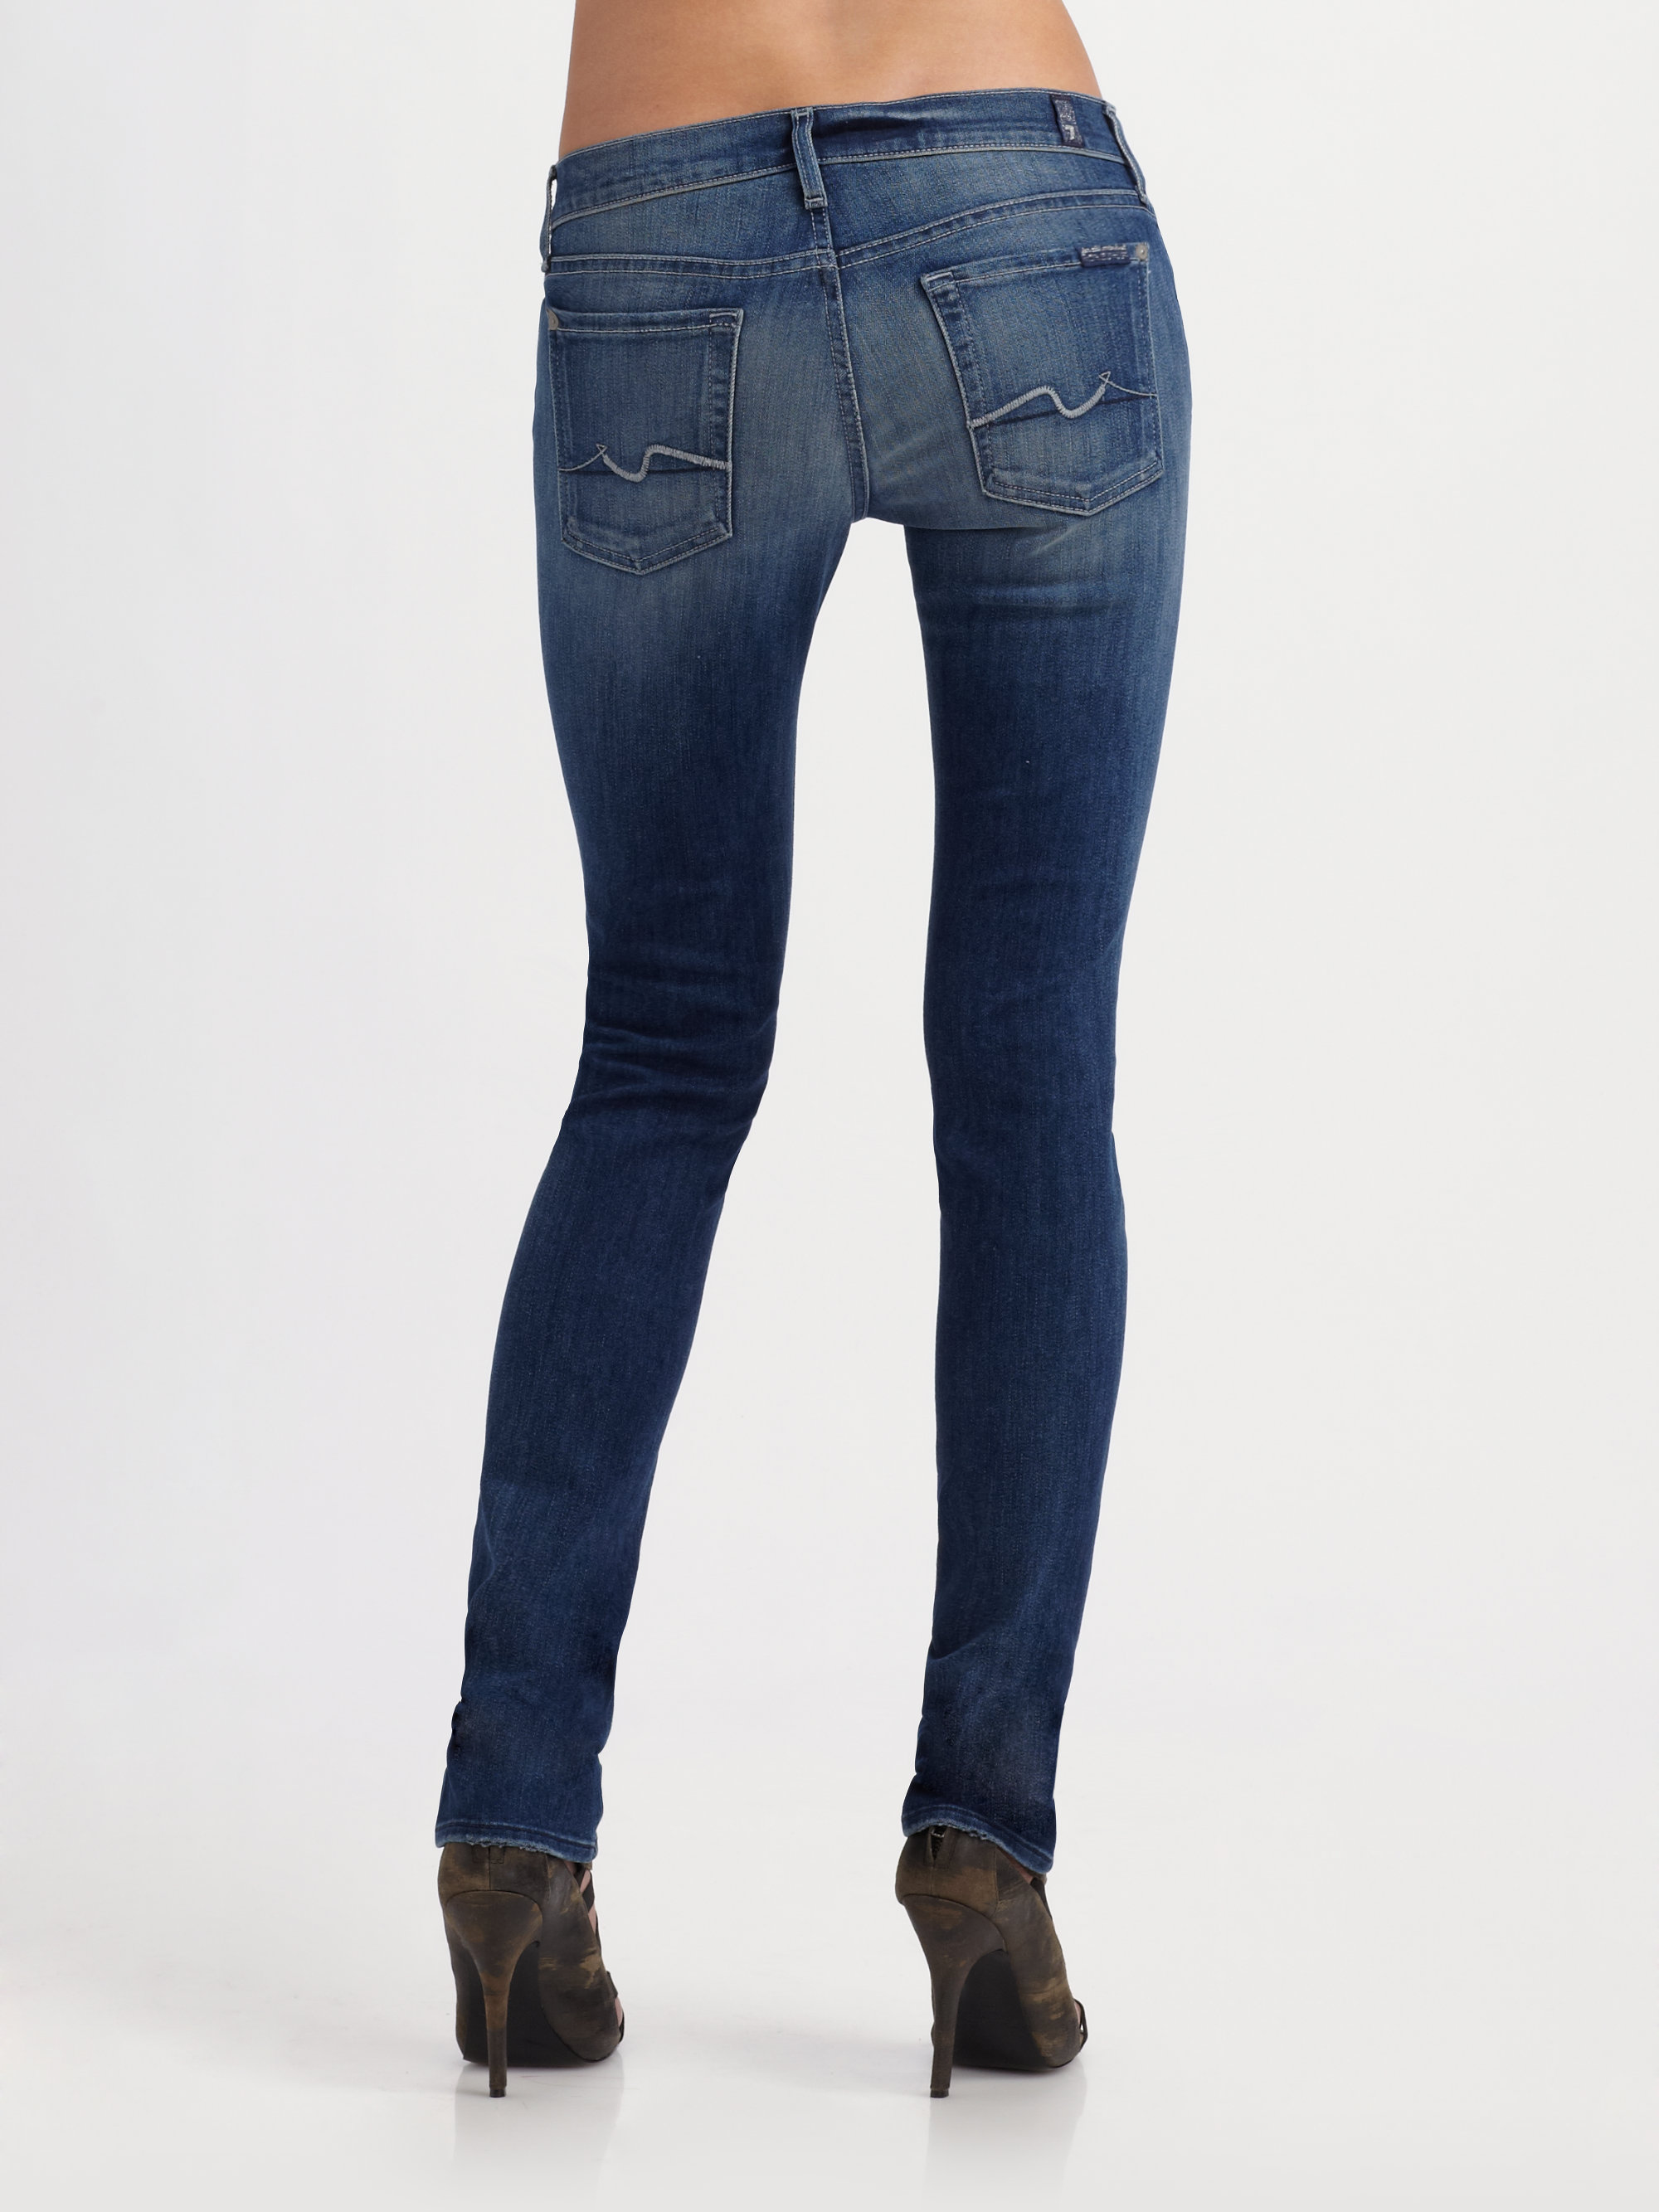 lyst 7 for all mankind roxanne skinny jeans in blue. Black Bedroom Furniture Sets. Home Design Ideas